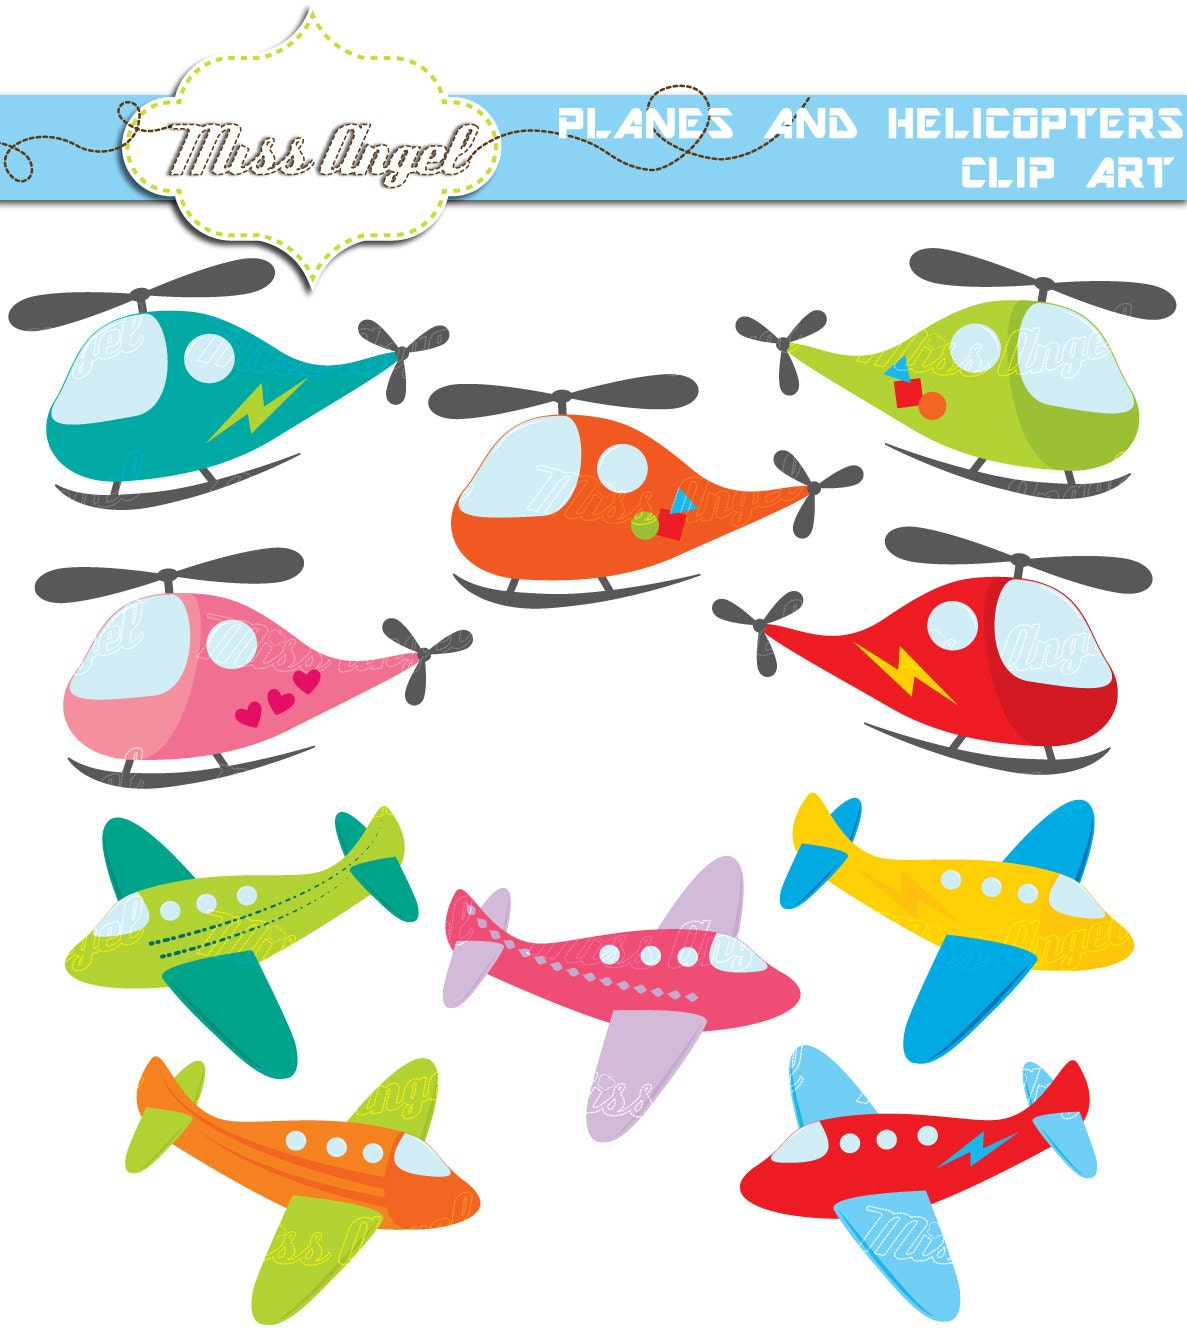 aeroplane helicopters clip art 10 cute planes and helicopters rh etsy com plains clip art planes clip art and pictures